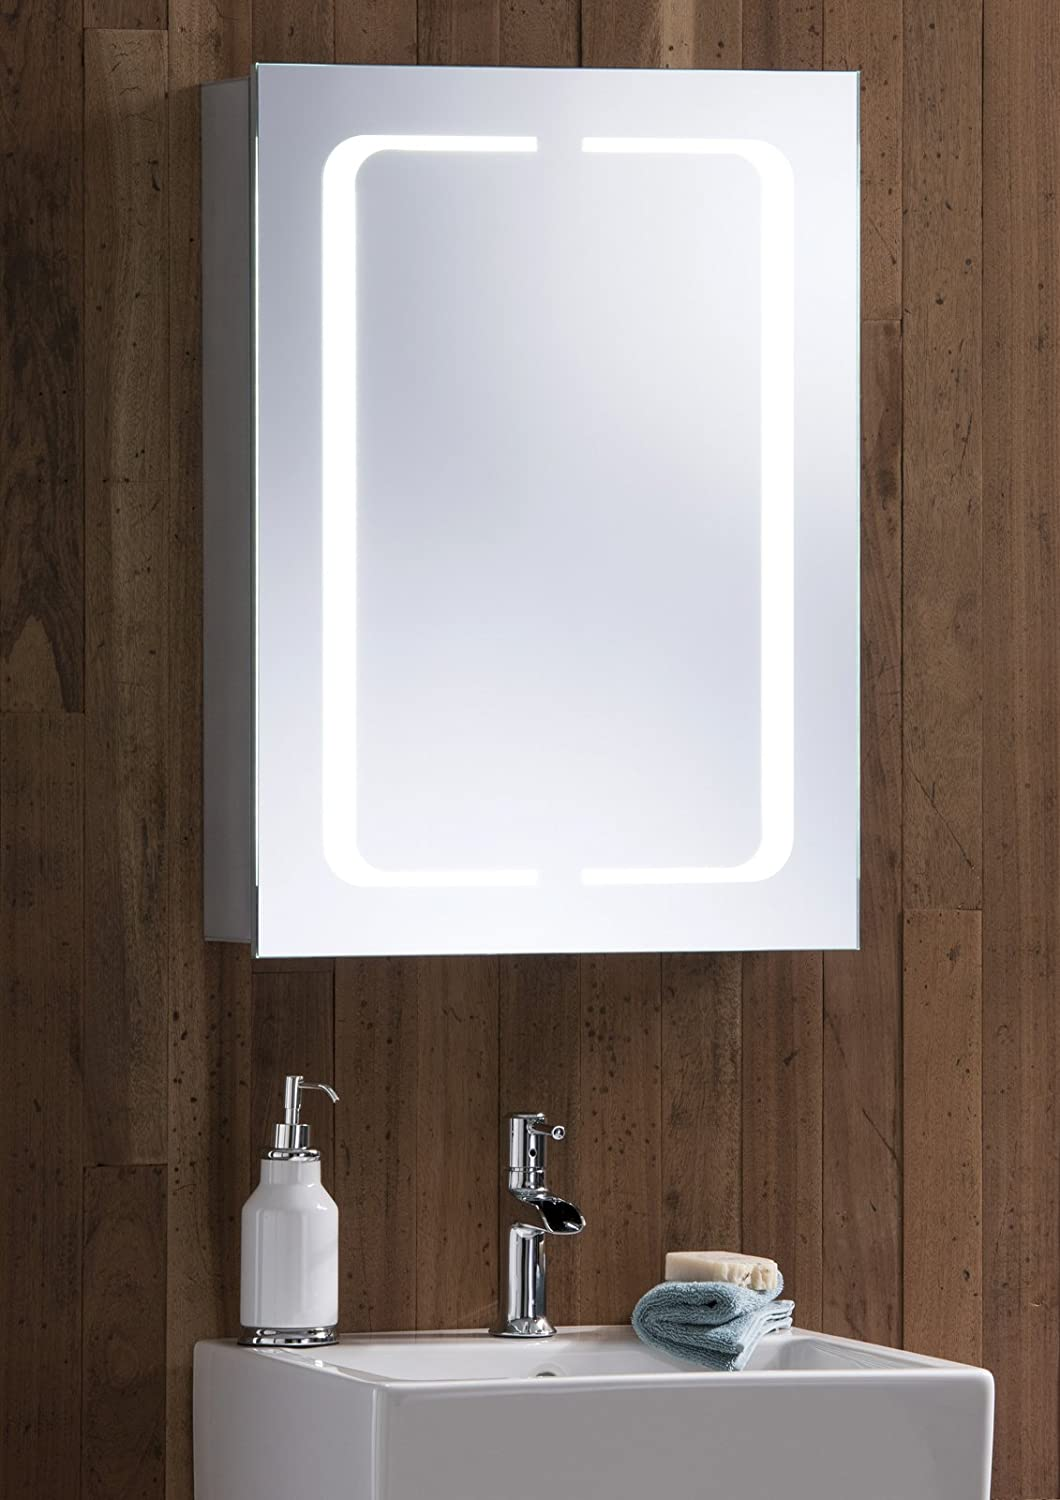 Neue design led illuminated bathroom mirror cabinet with demister neue design led illuminated bathroom mirror cabinet with demister heat pad shaver and sensor switch with lights fully certified to british standards aloadofball Image collections